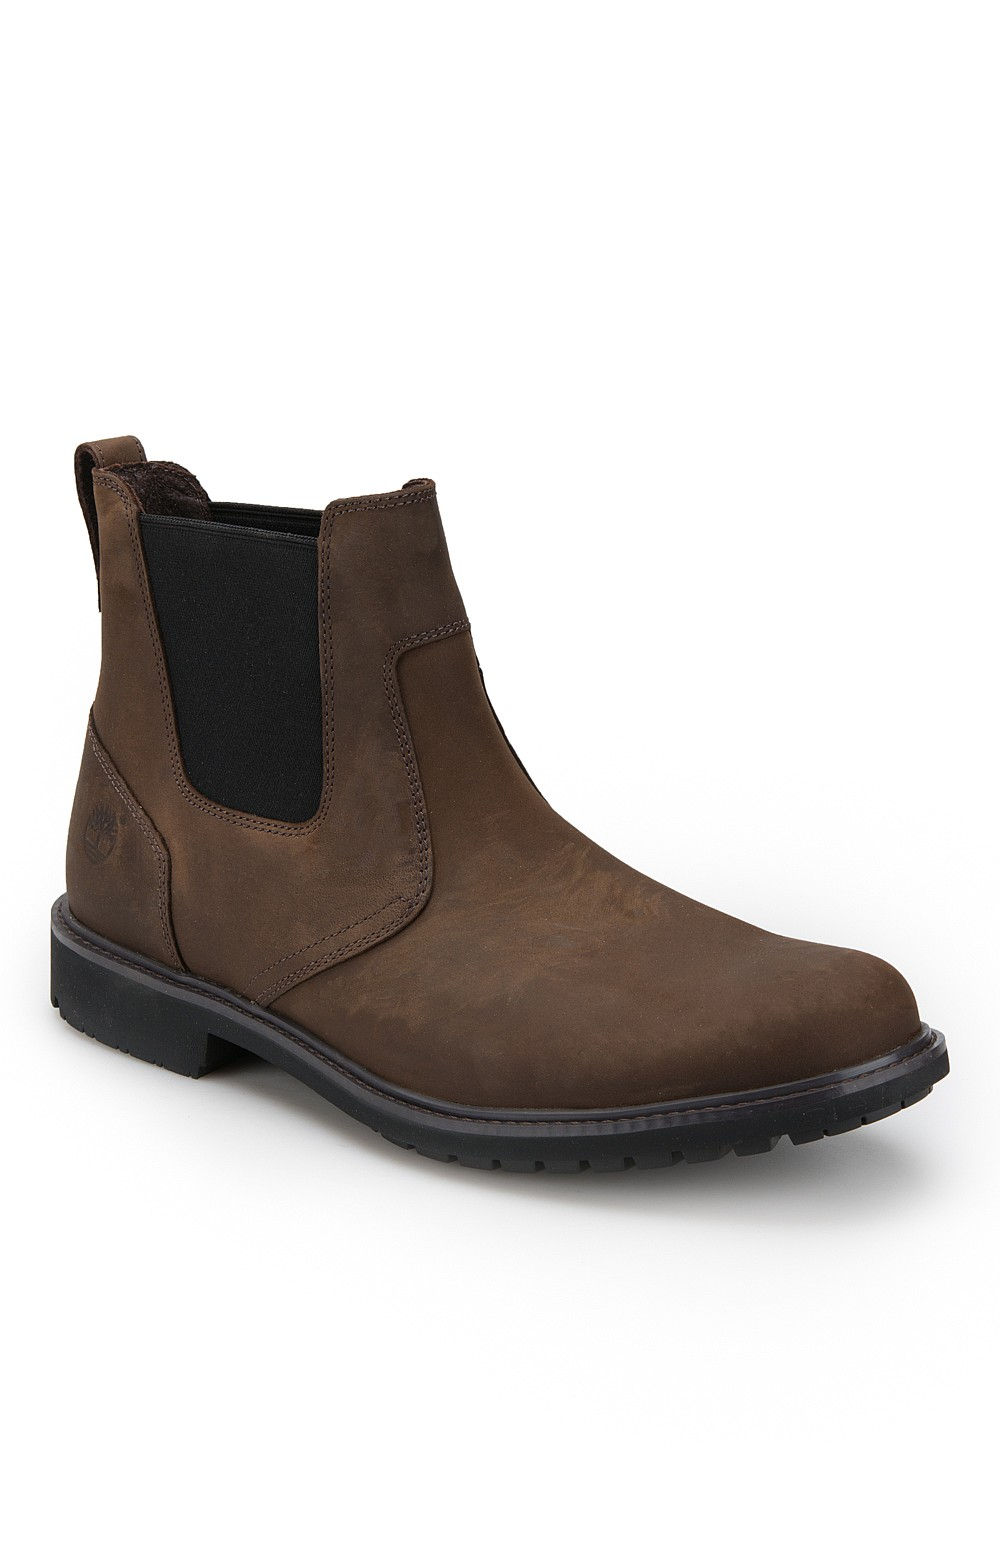 b1d1cb4b5e98 Mens Timberland Earthkeepers Chelsea Boot